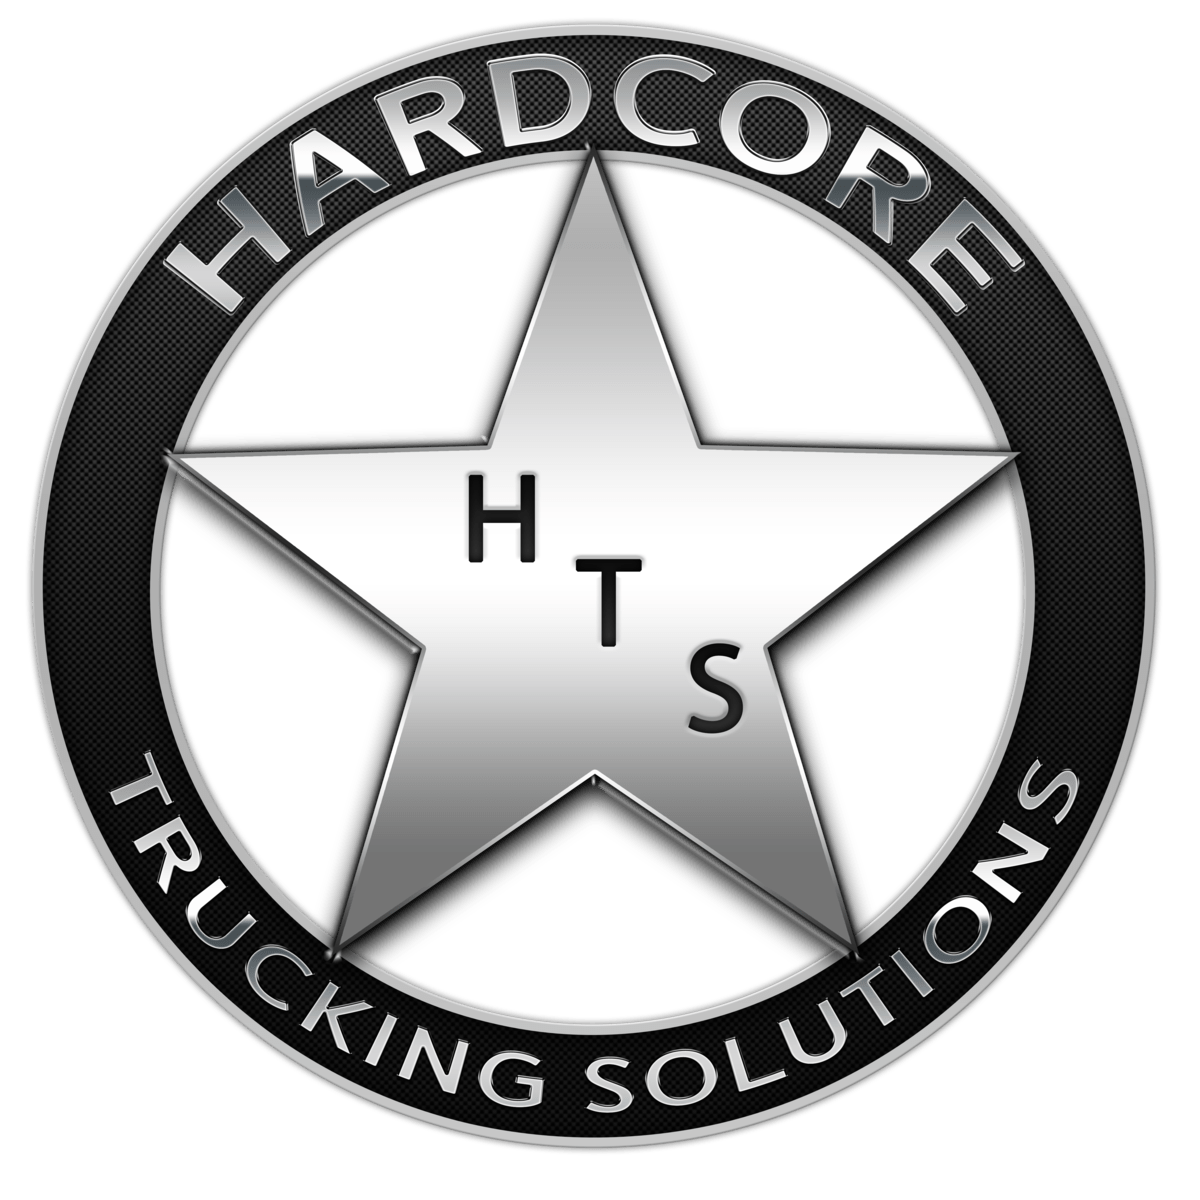 hardcore-trucking-solutions